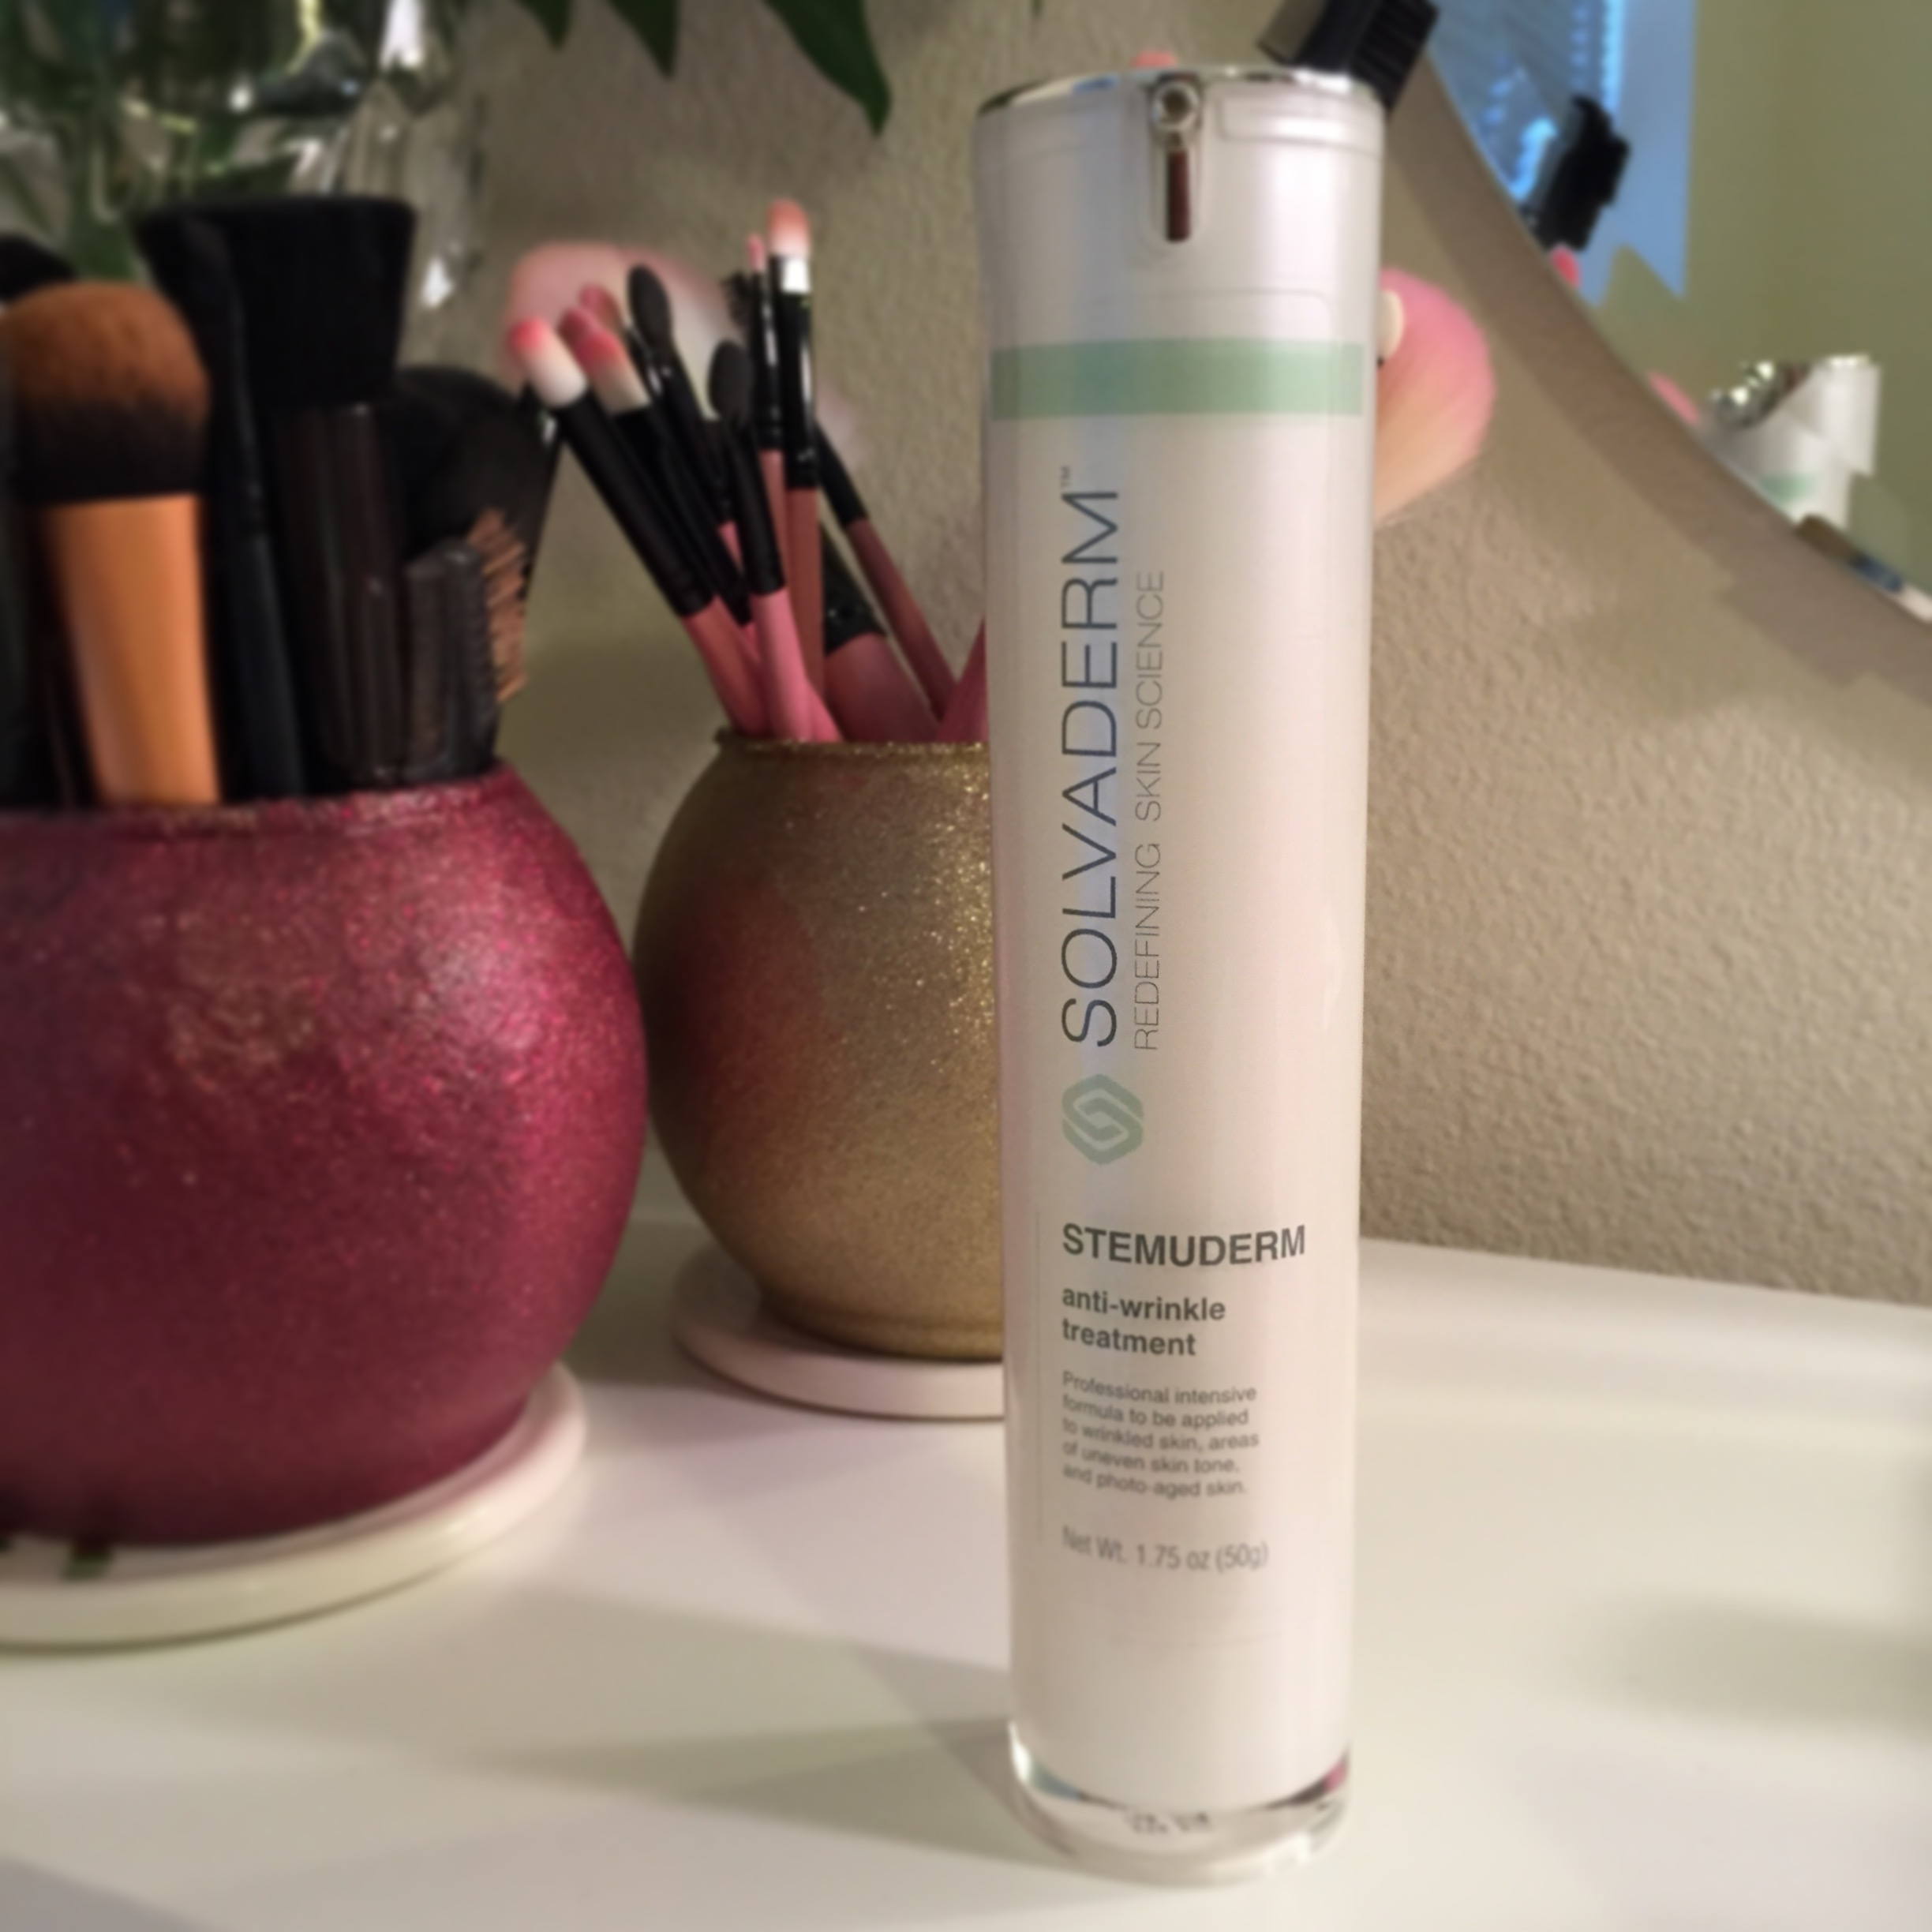 Stemuderm Review: Why This Cream Is The Best Anti-aging Solution